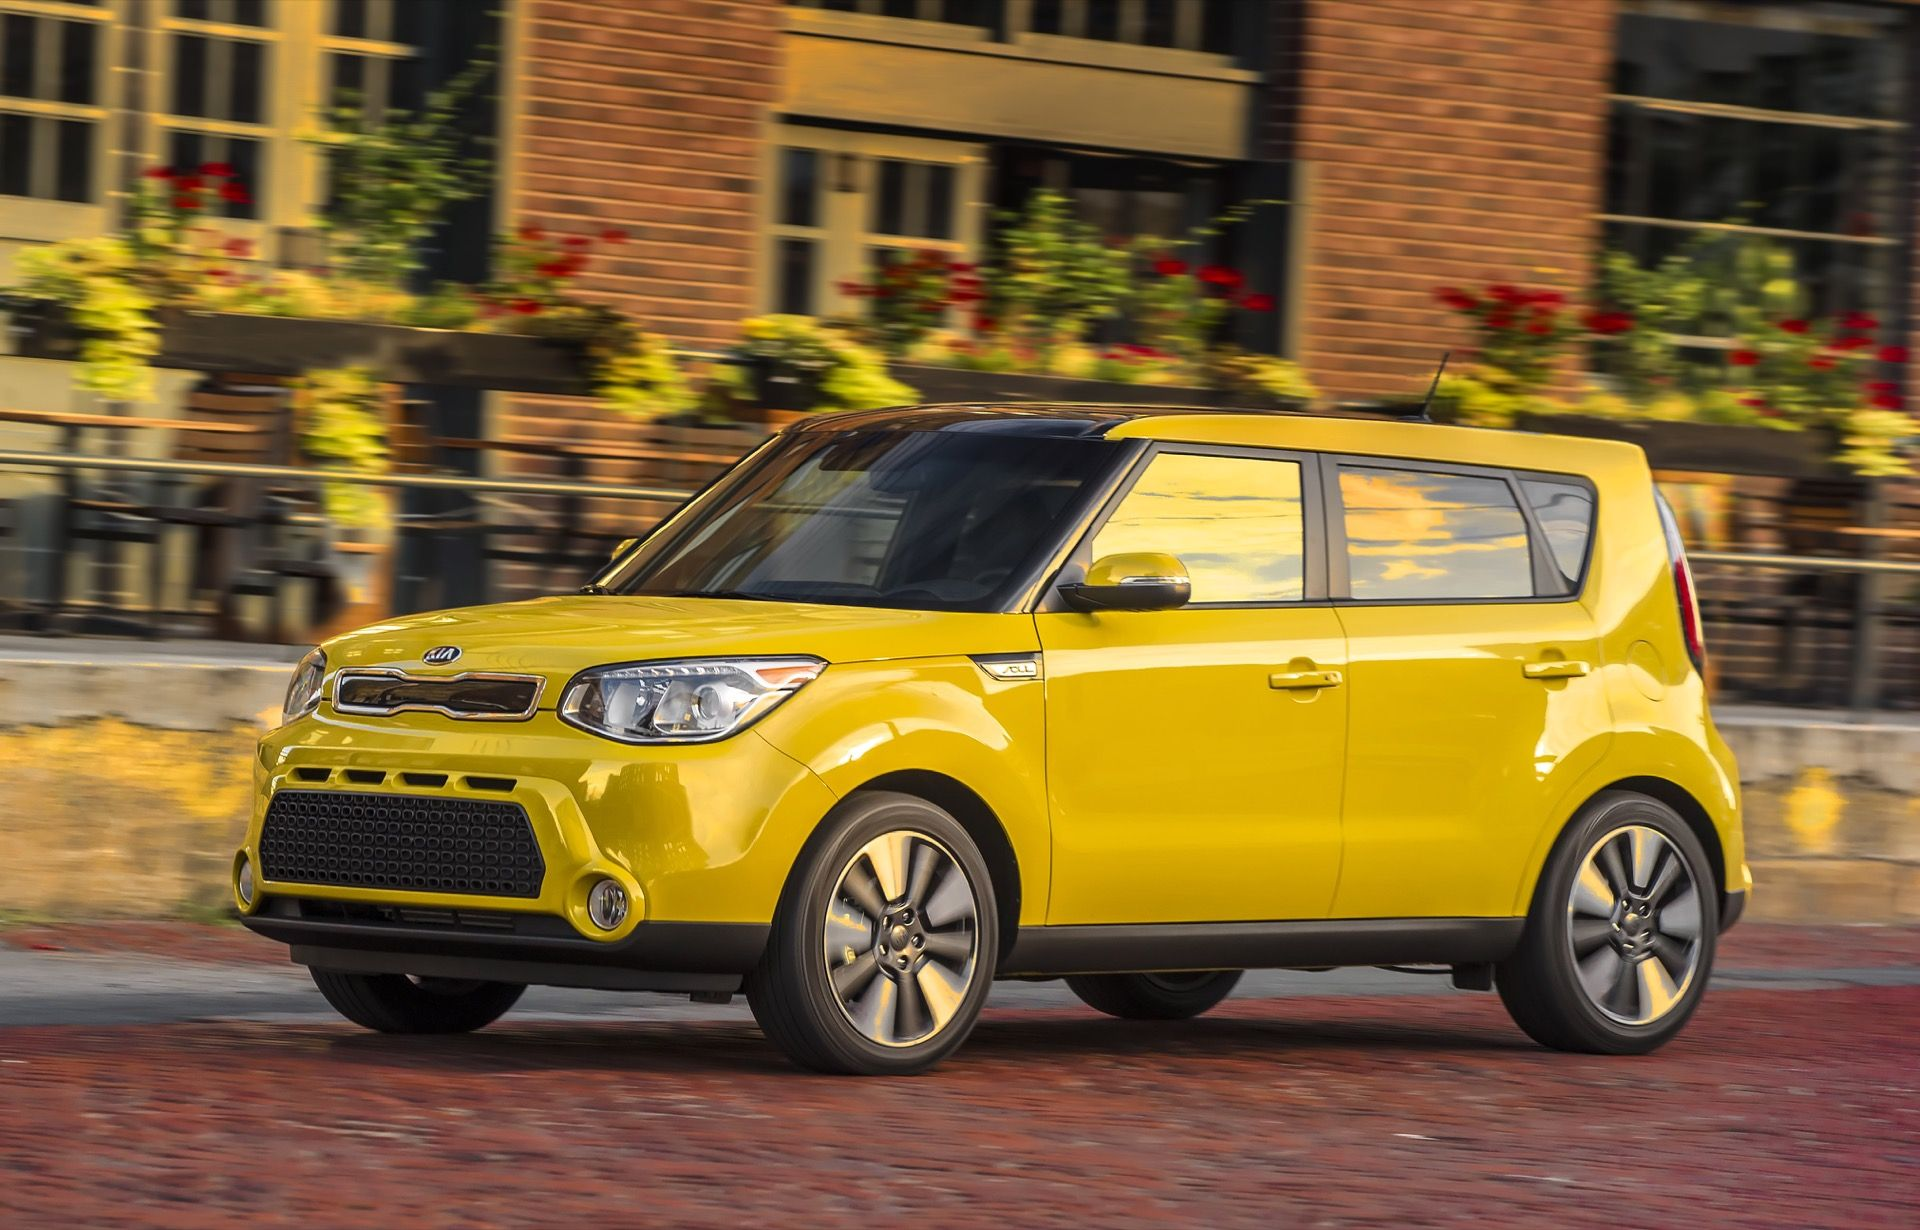 Get the latest reviews of the 2016 Kia Soul. Find prices